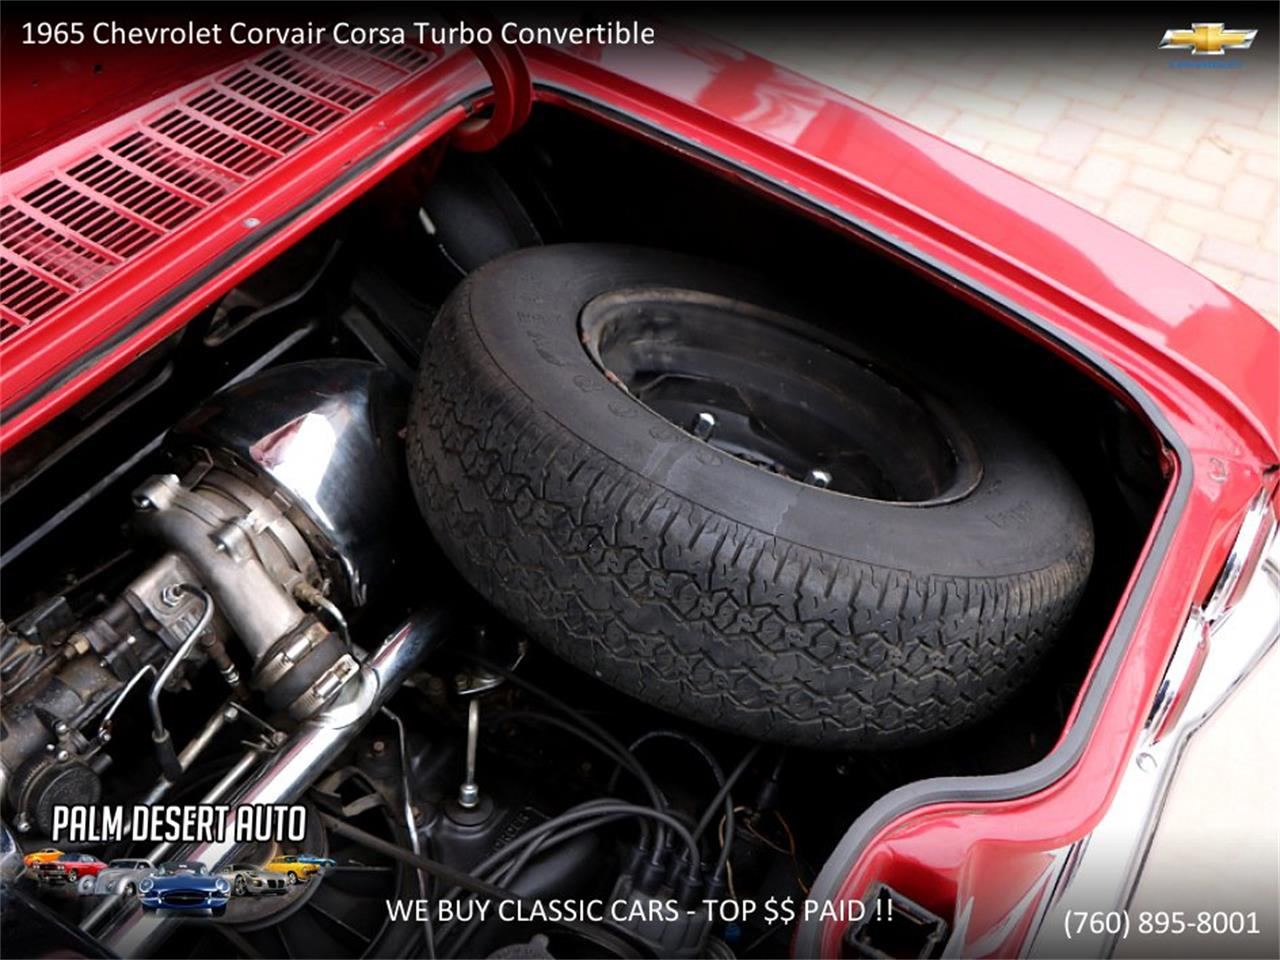 Large Picture of '65 Corvair located in Palm Desert  California - $17,750.00 - PFFC